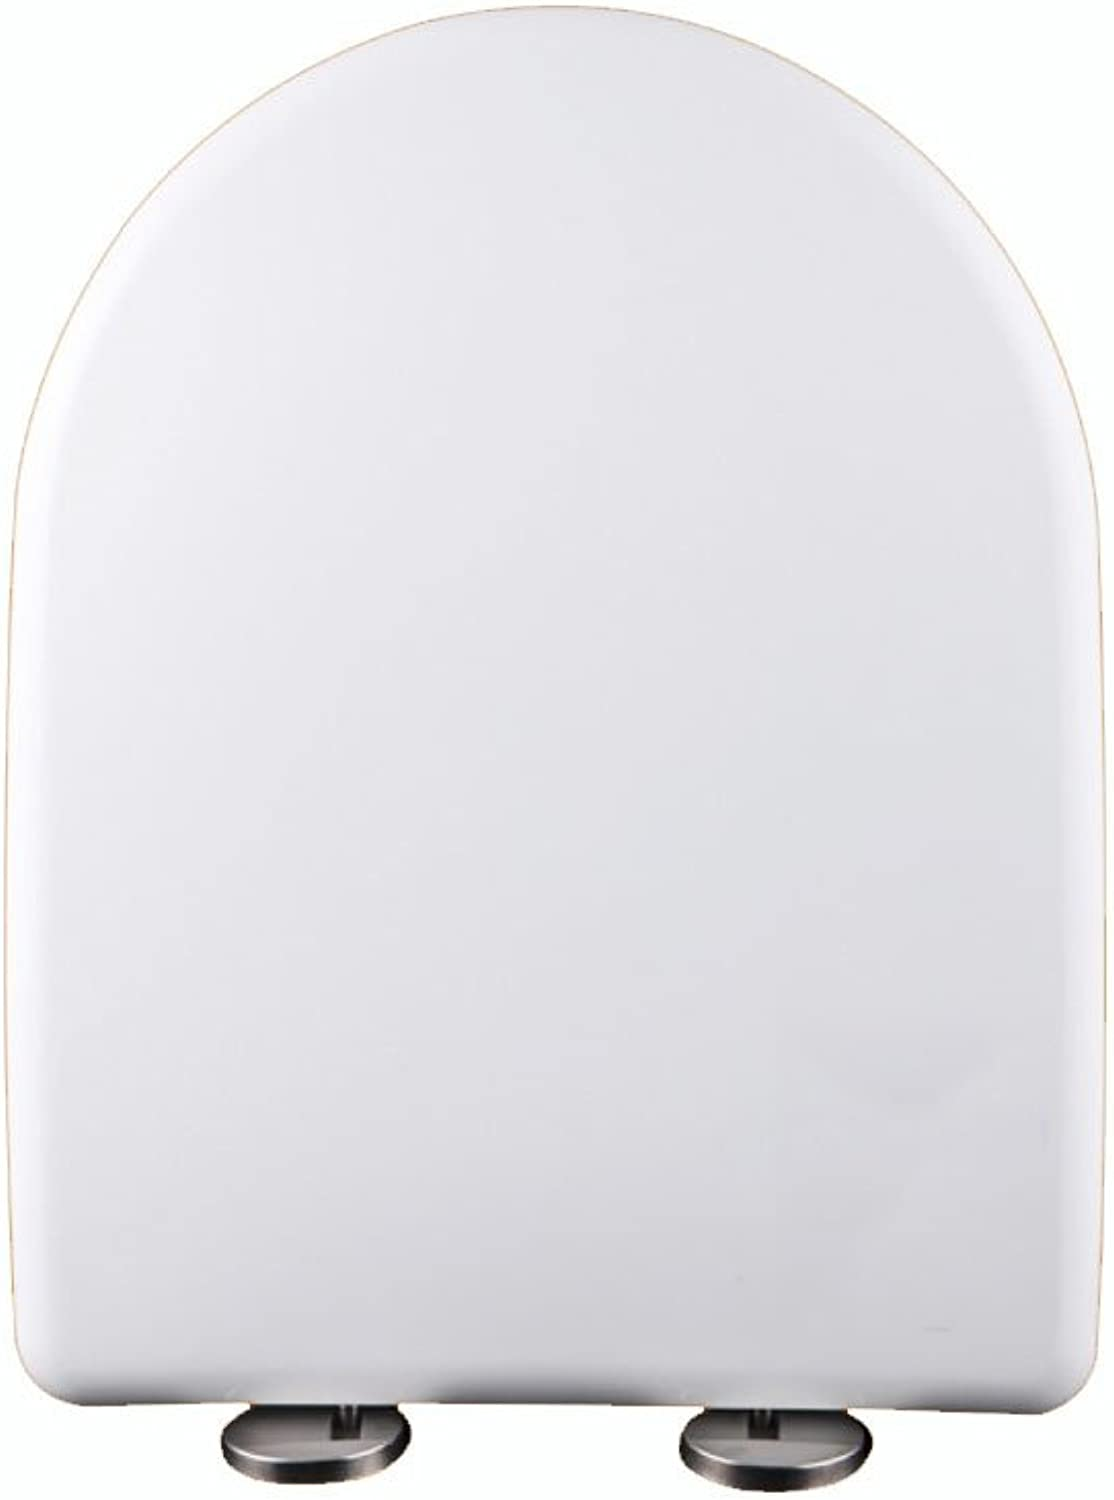 Toilet Seat Universal Step-down Mute Stereo PP Toilet Cover Antibacterial Vintage Cover,D.-46cm36.3cm